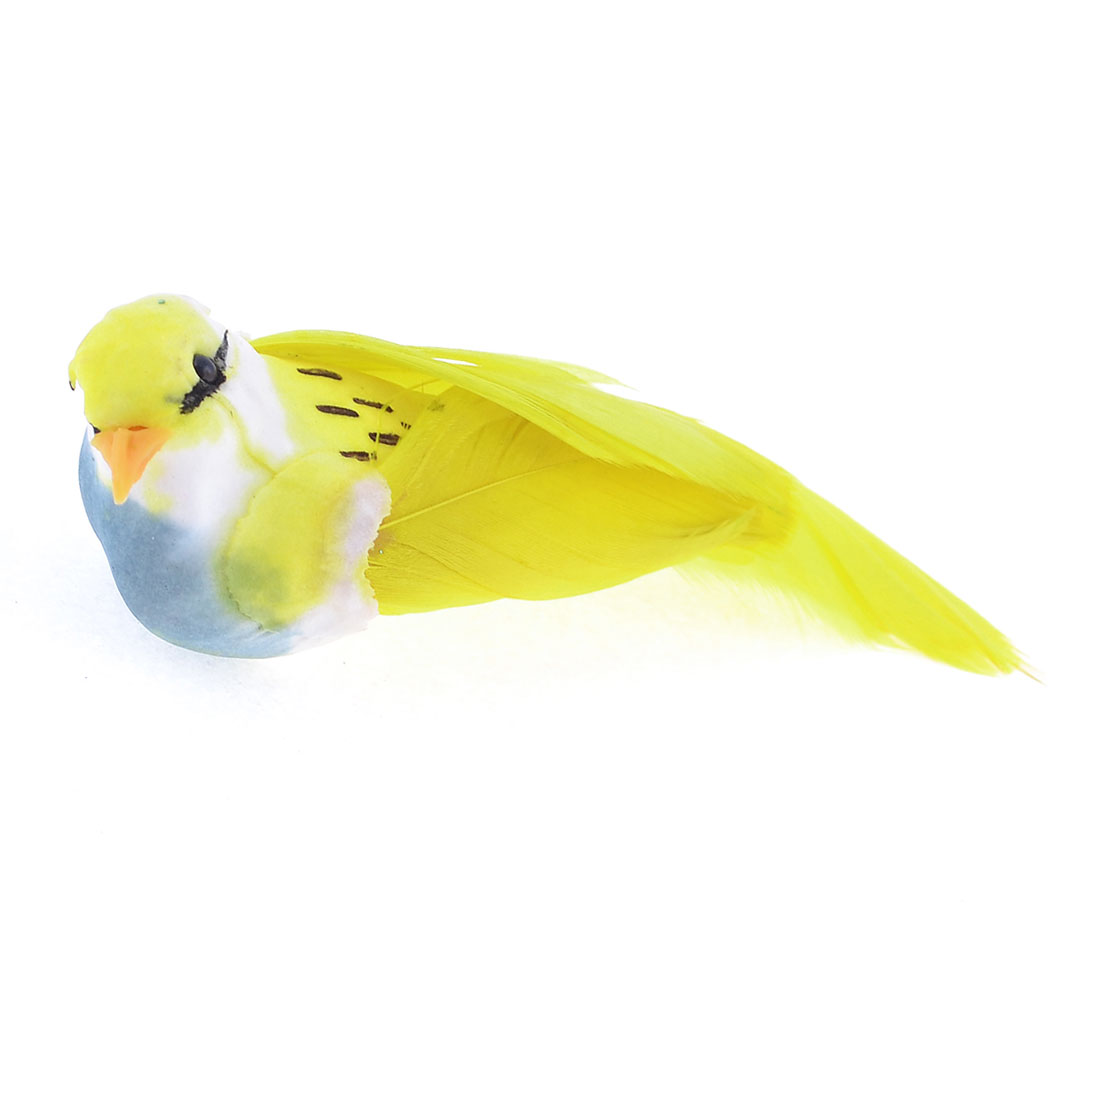 Foam Magnetic Body Fake Feathers Artificial Bird Toy Yellow